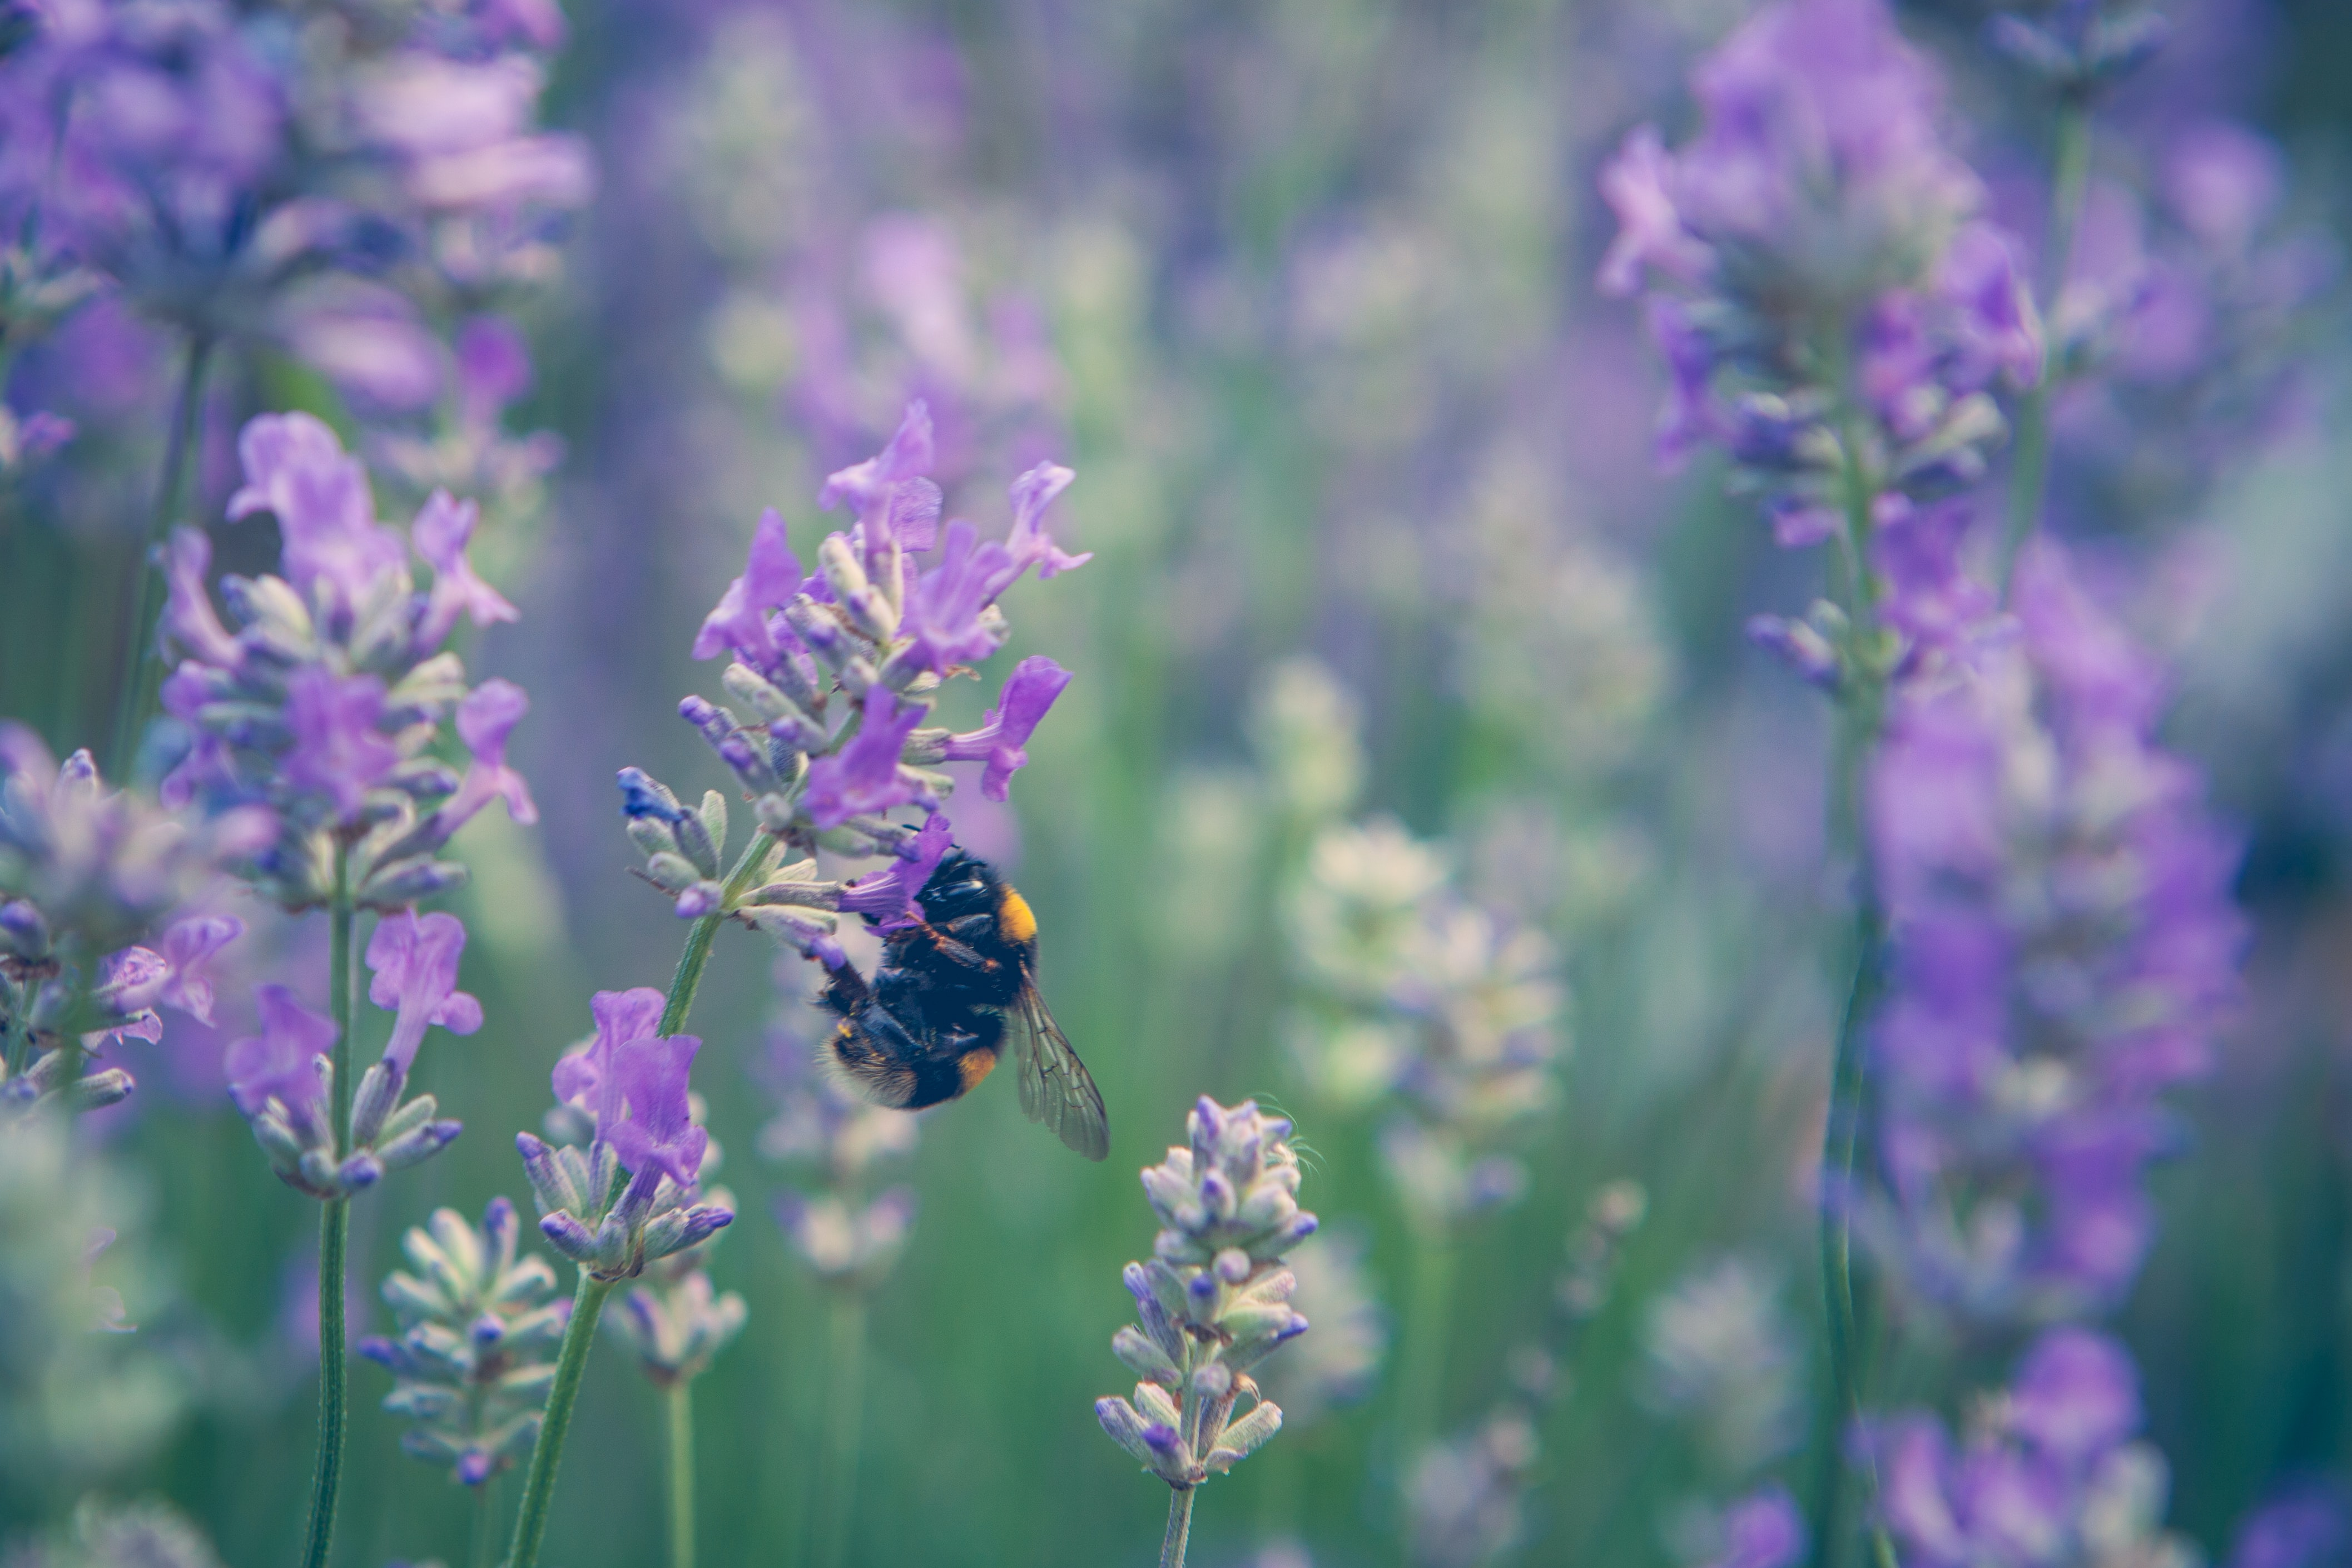 black and yellow bumble bee perched on purple lavender flower